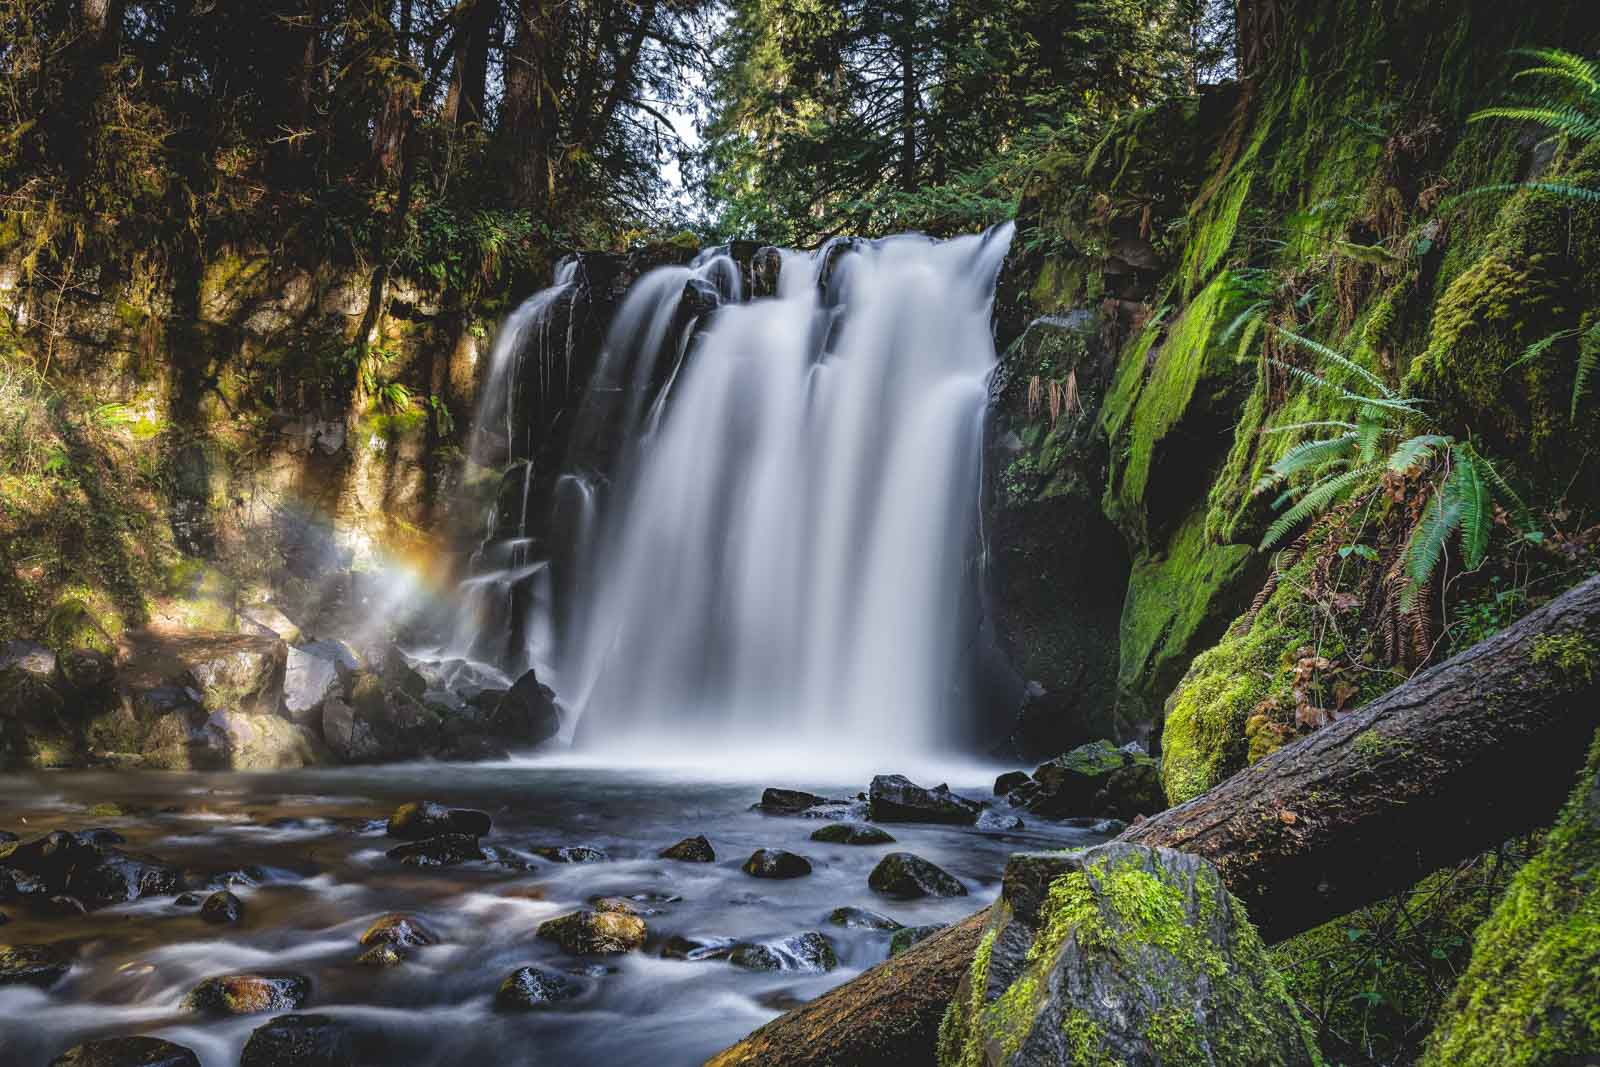 If you're looking for Oregon waterfalls, be sure to visit McDowell Creek Falls.